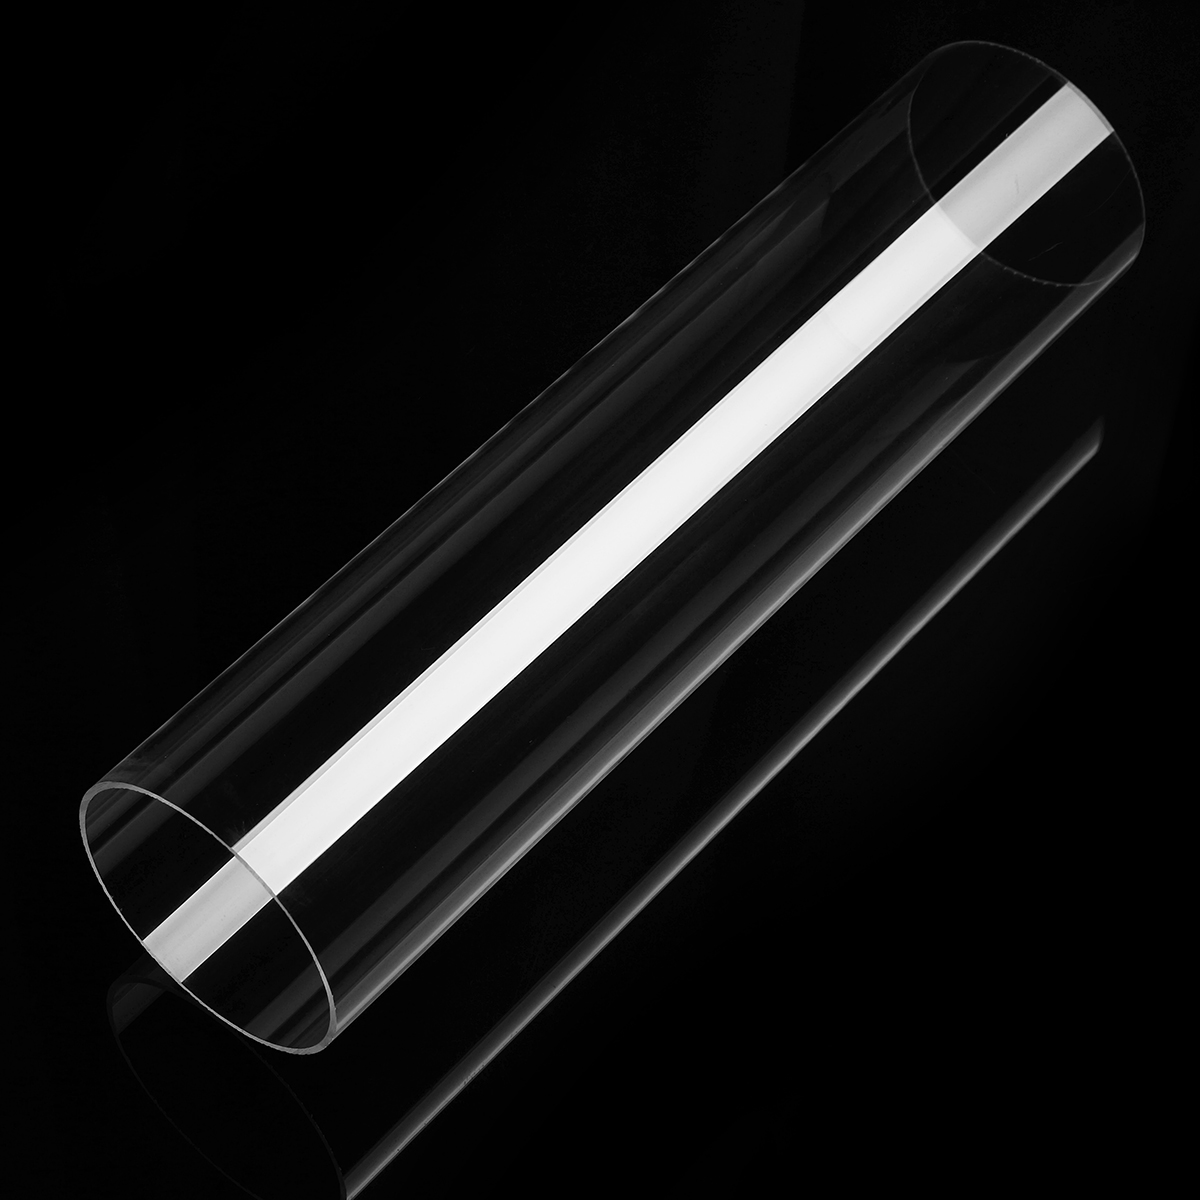 Clear Acryclic Lucite Tube Pipe Round Acryclic Tube 30cm Length